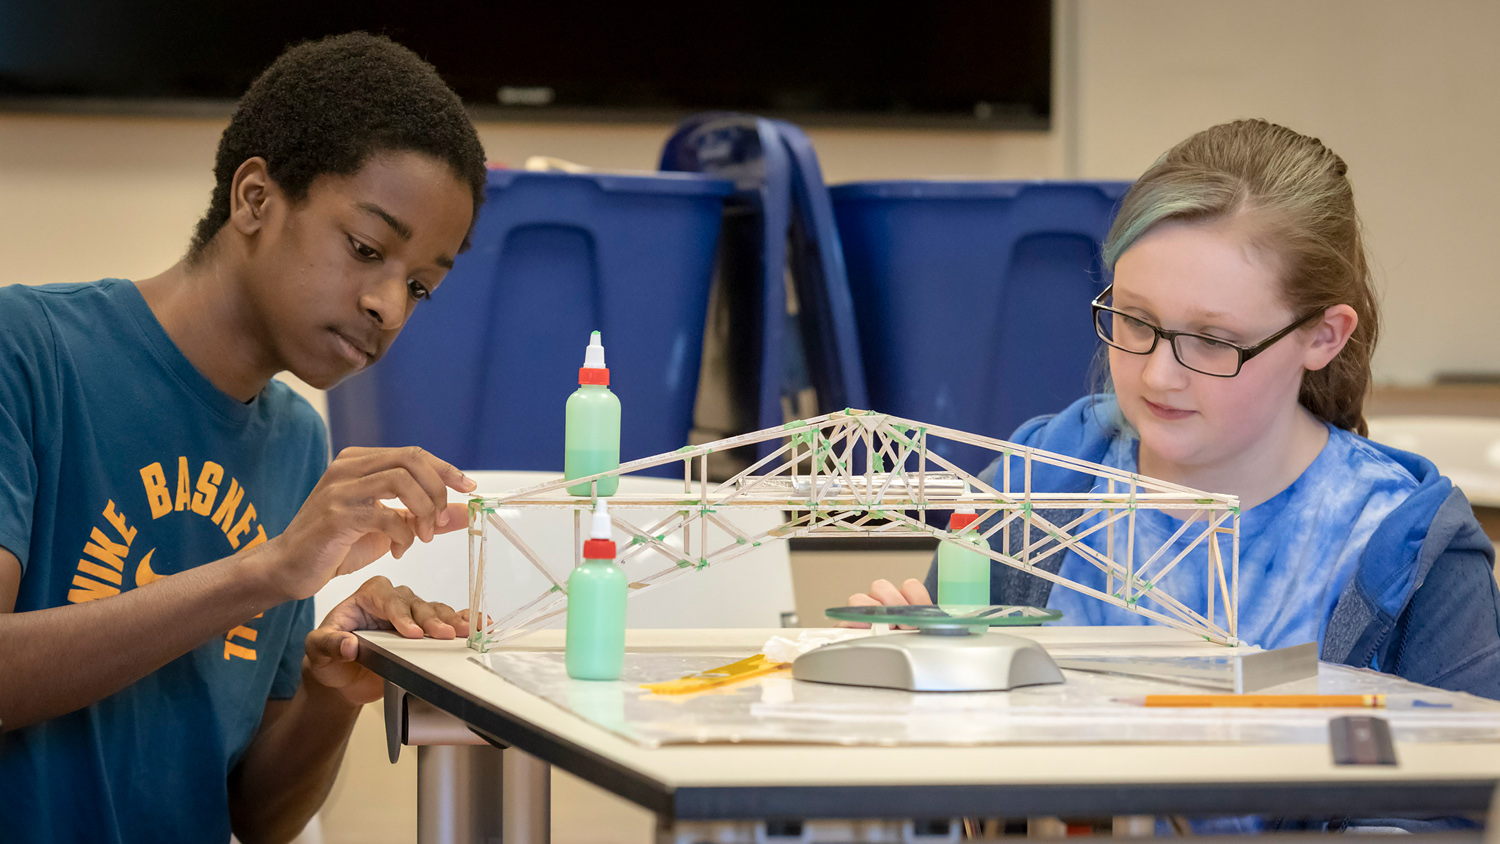 Two students working on a STEM education project